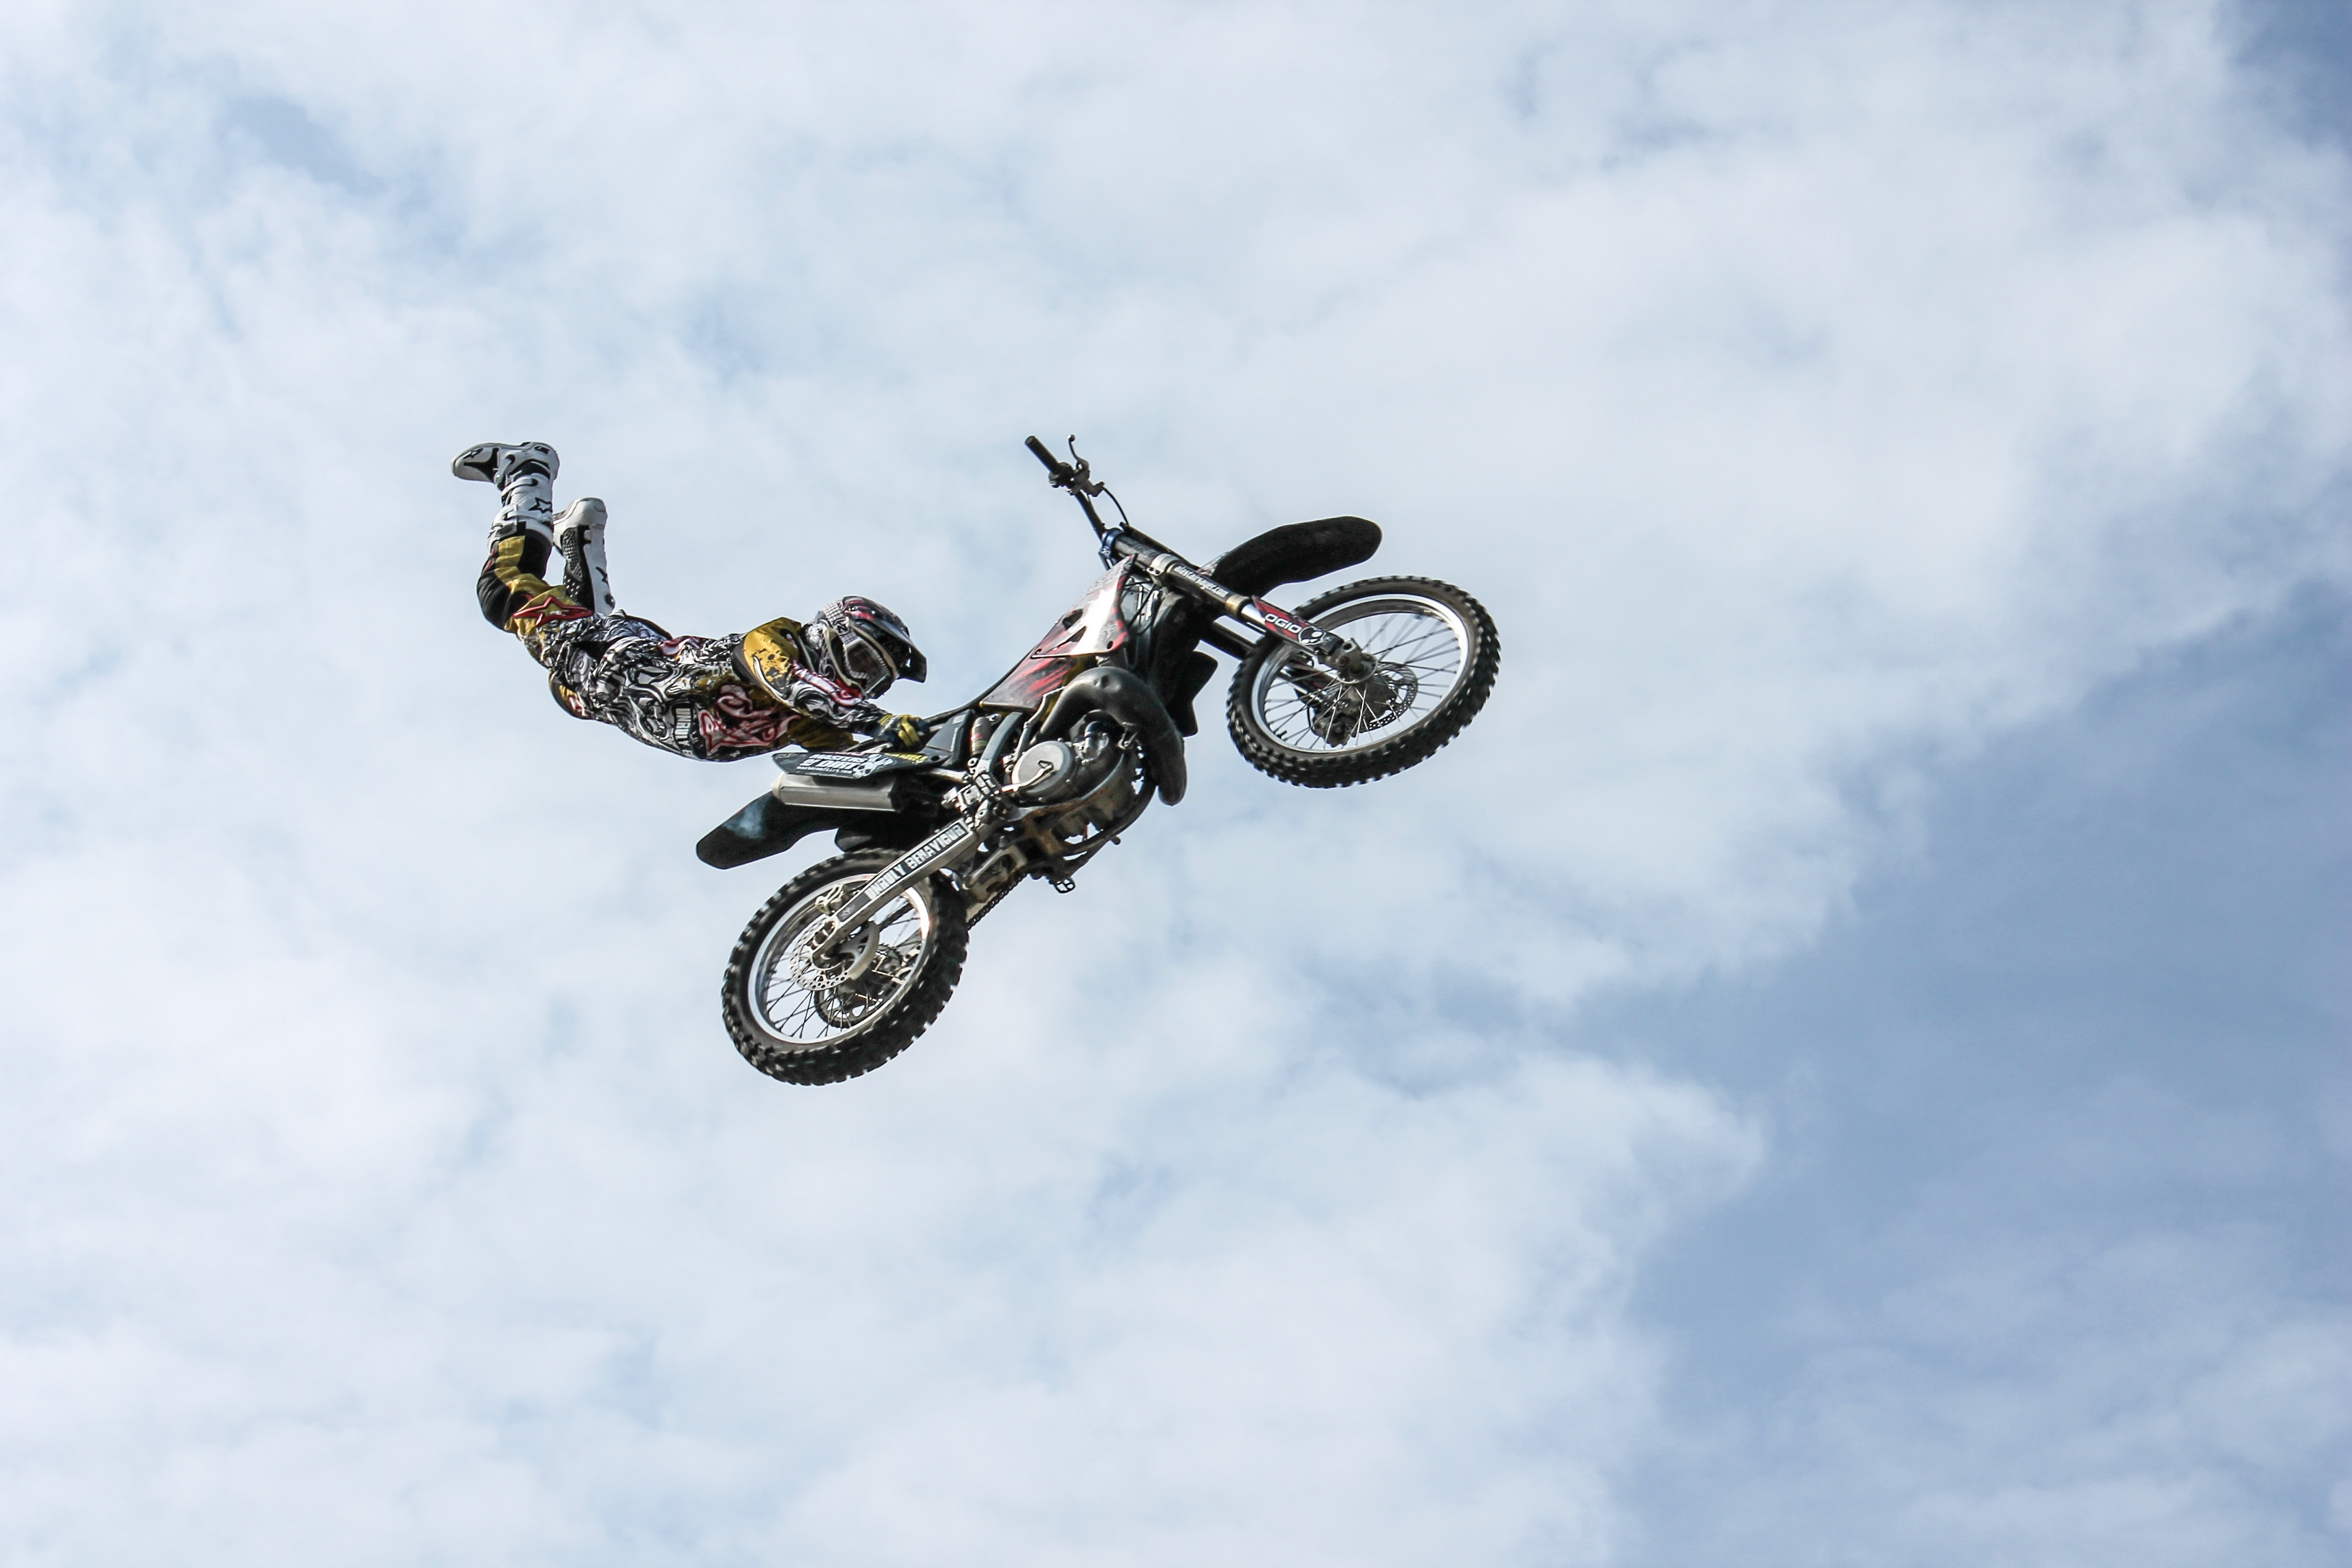 A motocross biker doing a handstand in the air on his motorcycle